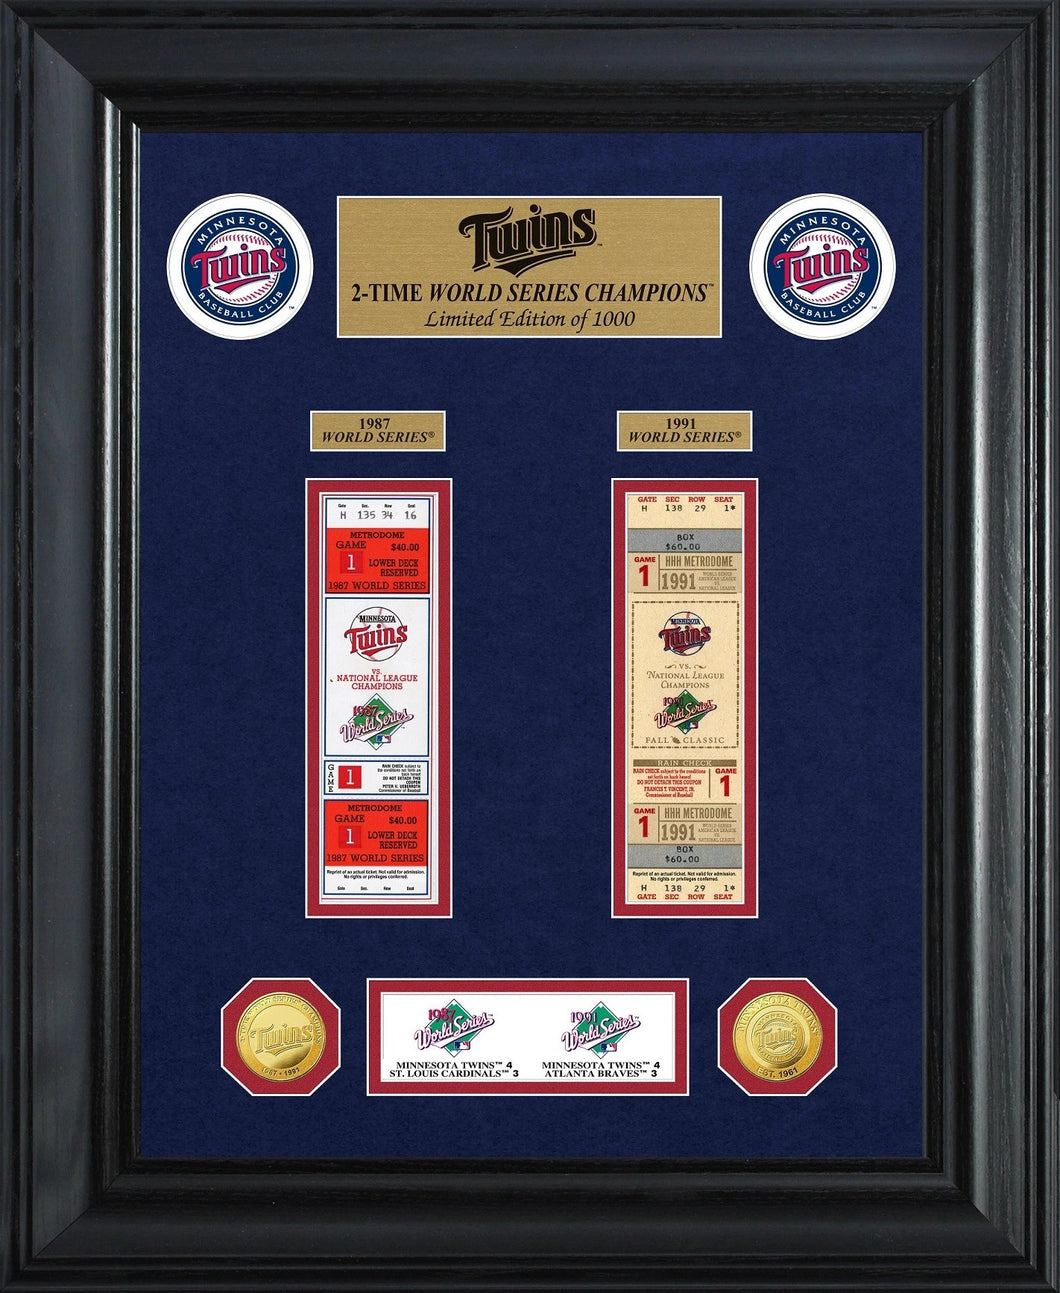 Minnesota Twins world series champions